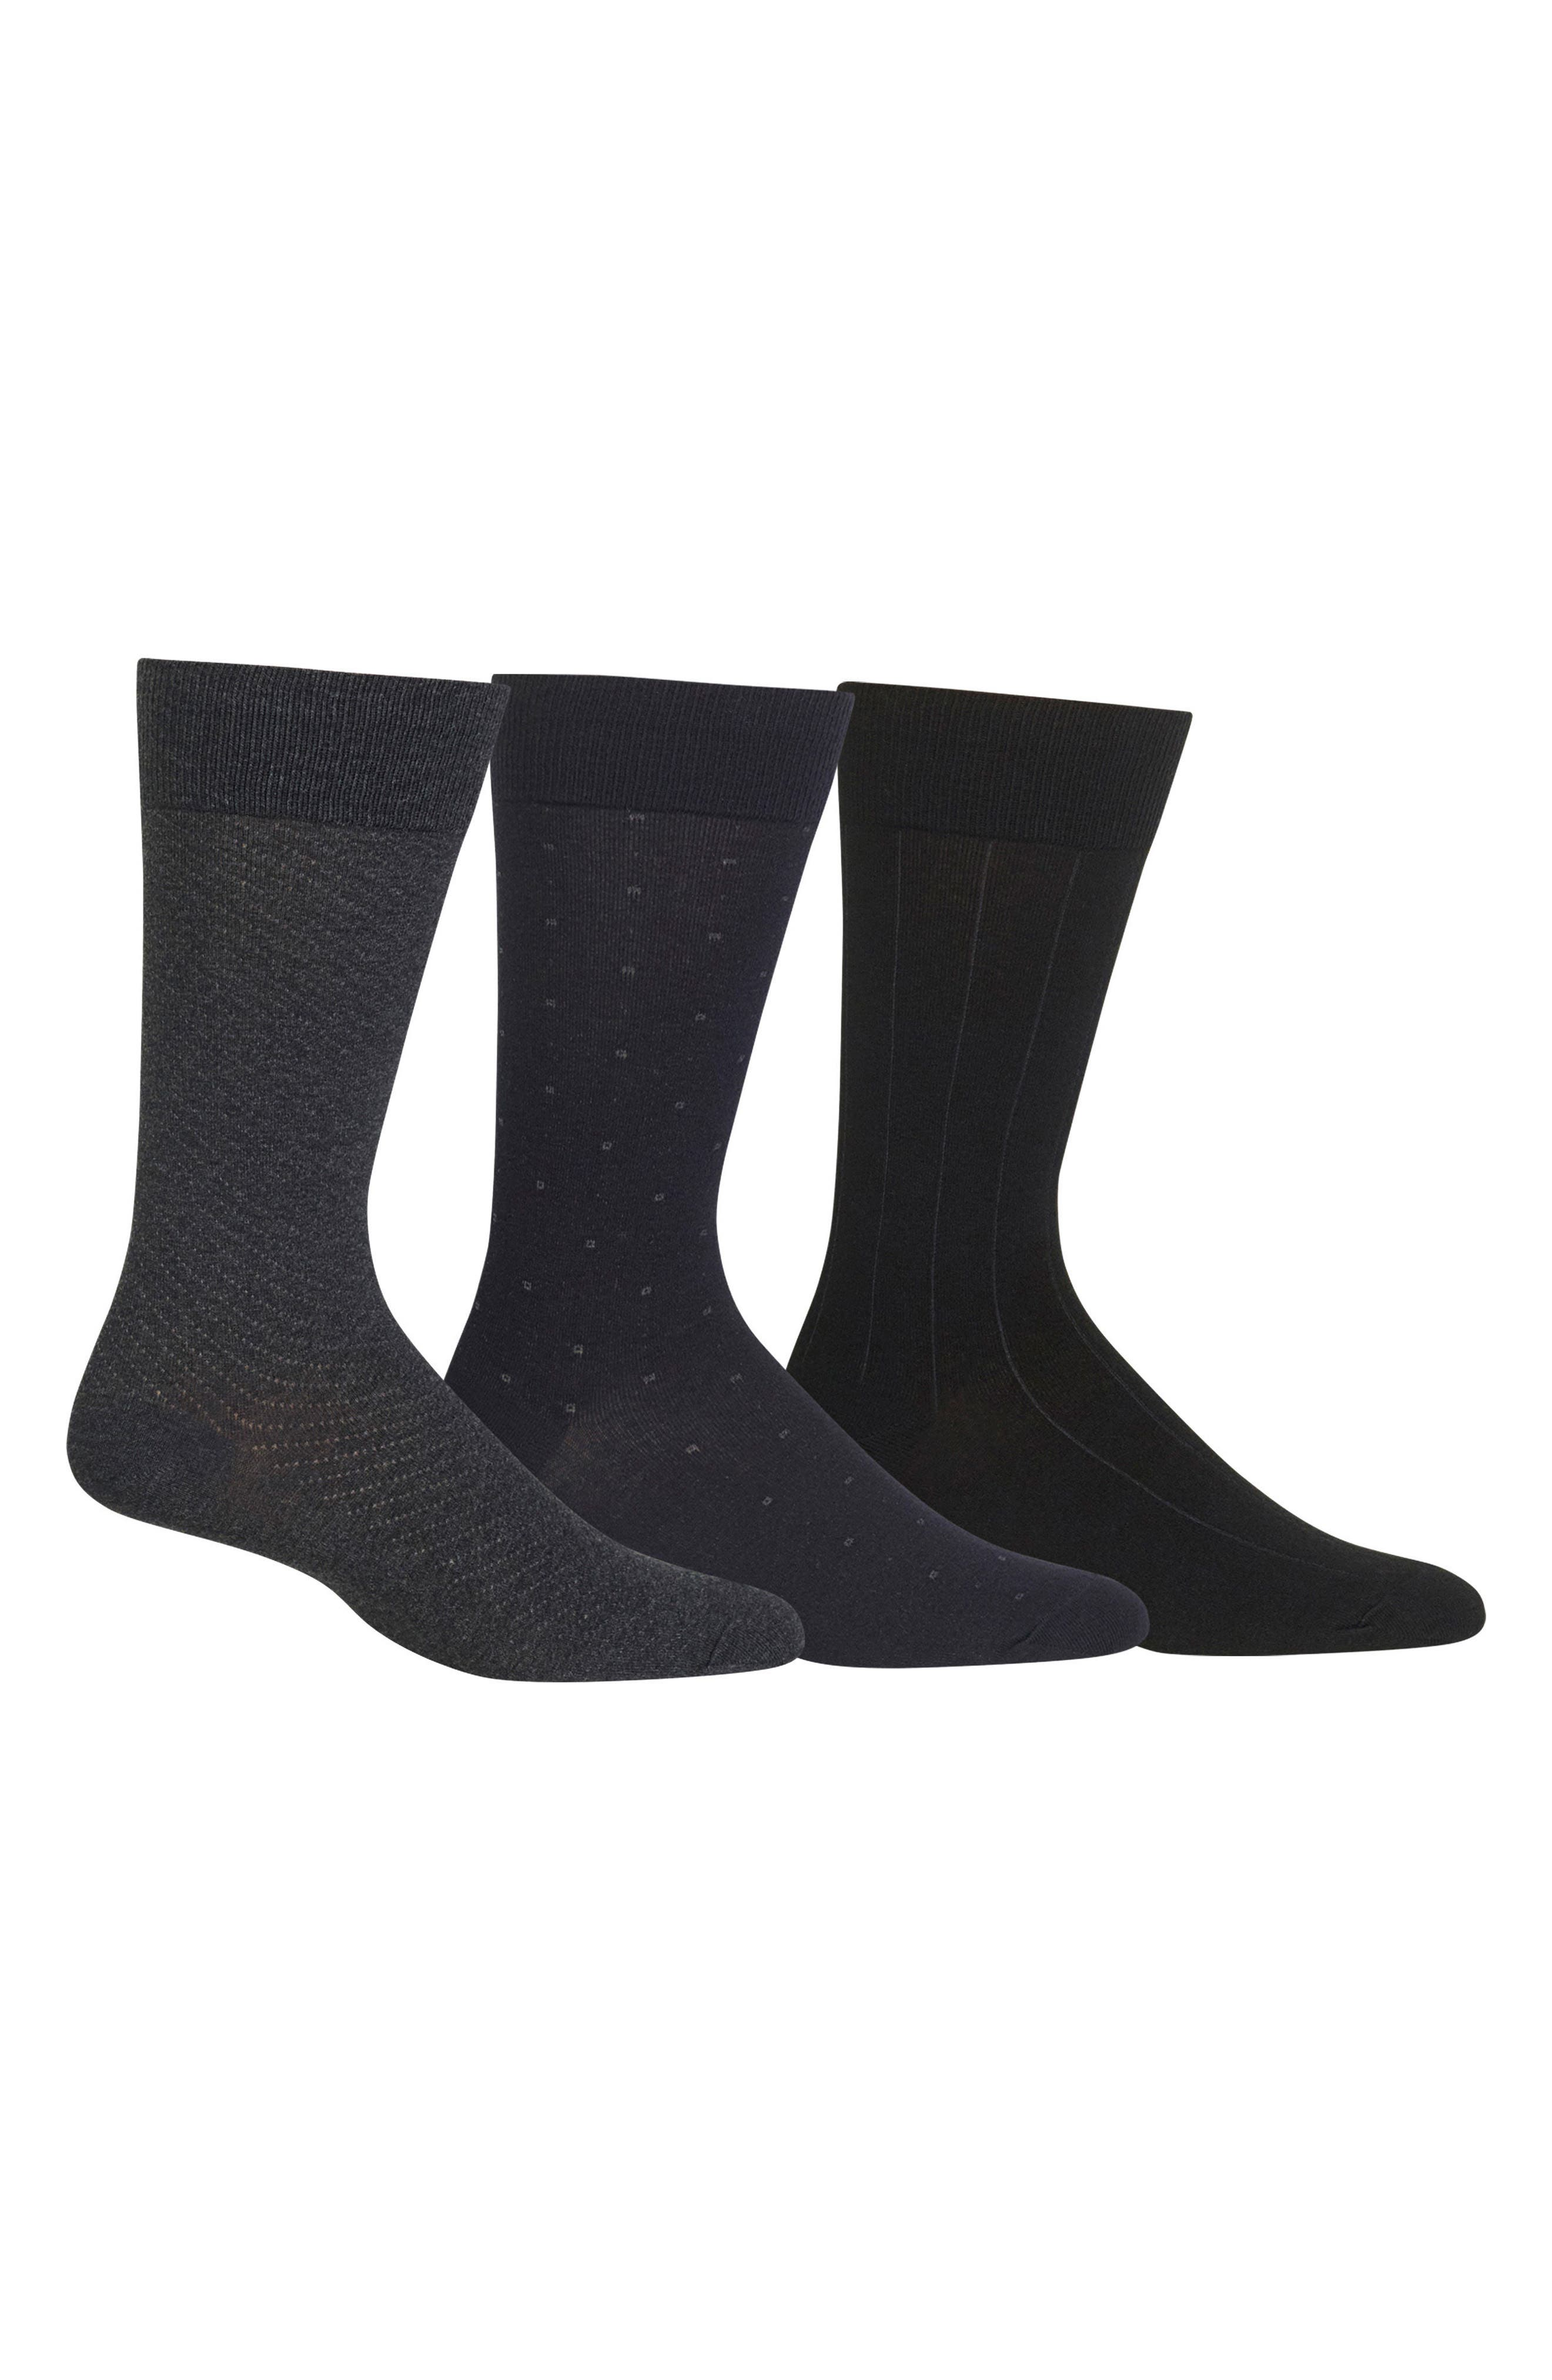 Dress Socks,                         Main,                         color, Charcoal Heather/ Navy/ Black